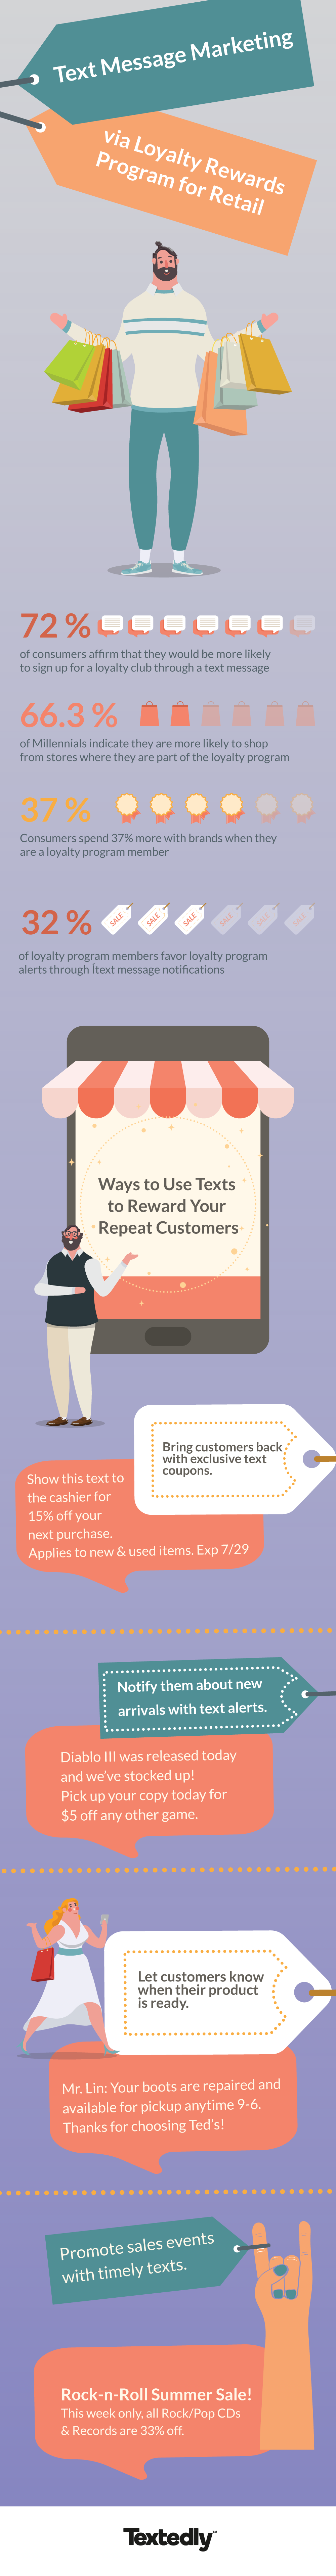 Text messaging for retail